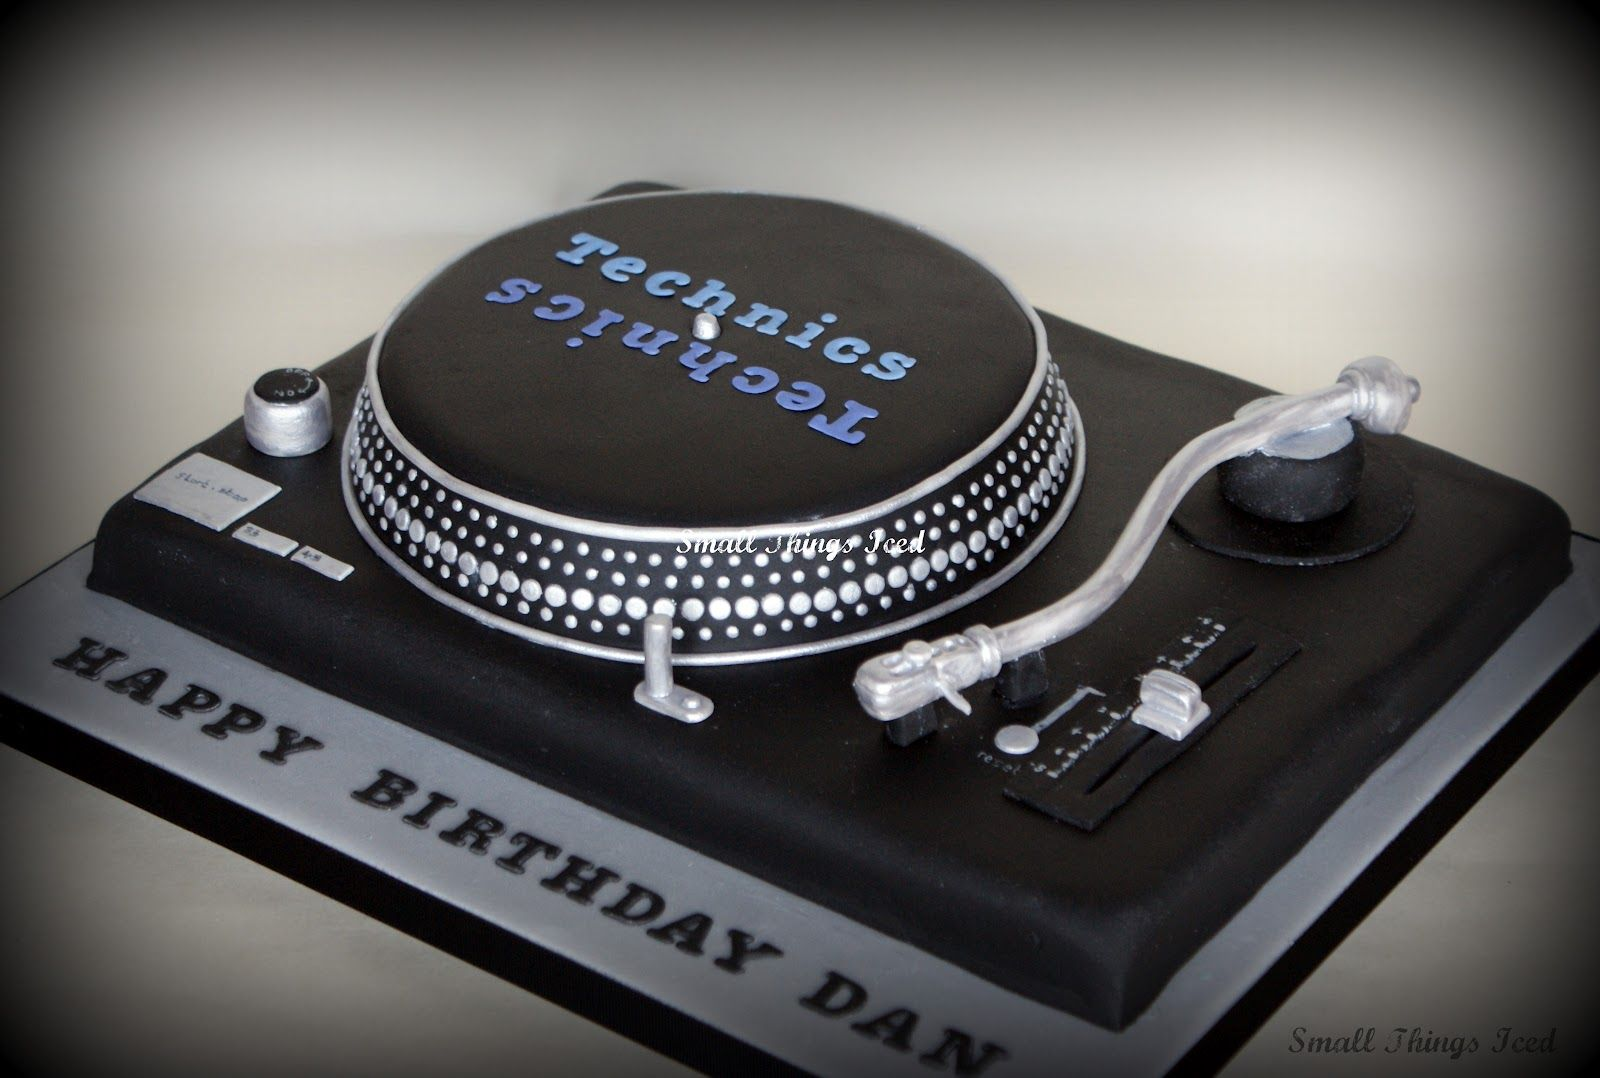 Marvelous Record Player Birthday Cakes Technics Turntable Cake With Birthday Cards Printable Benkemecafe Filternl